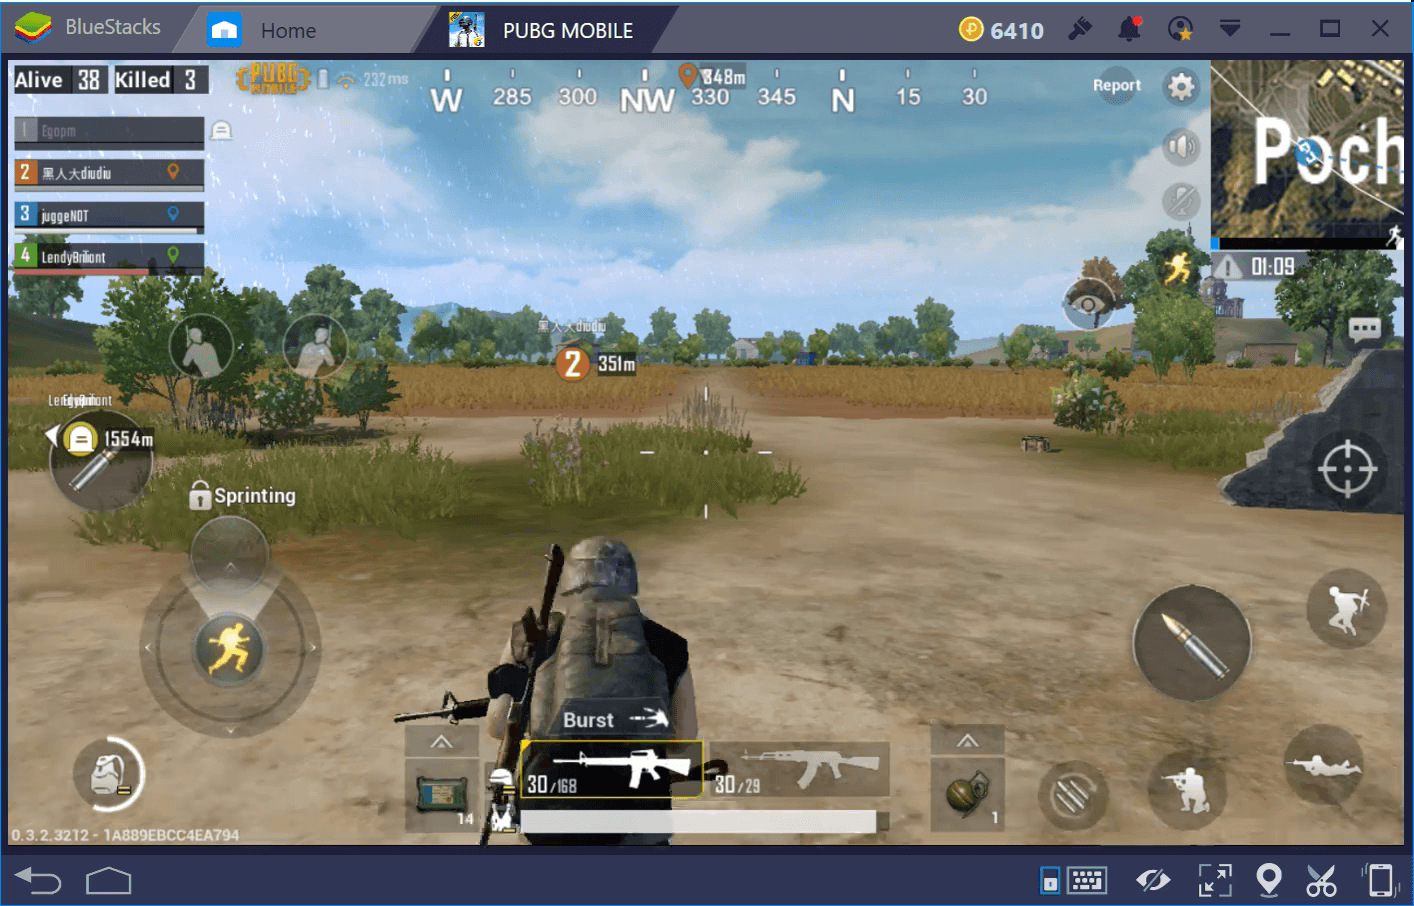 PUBG Mobile Map differences